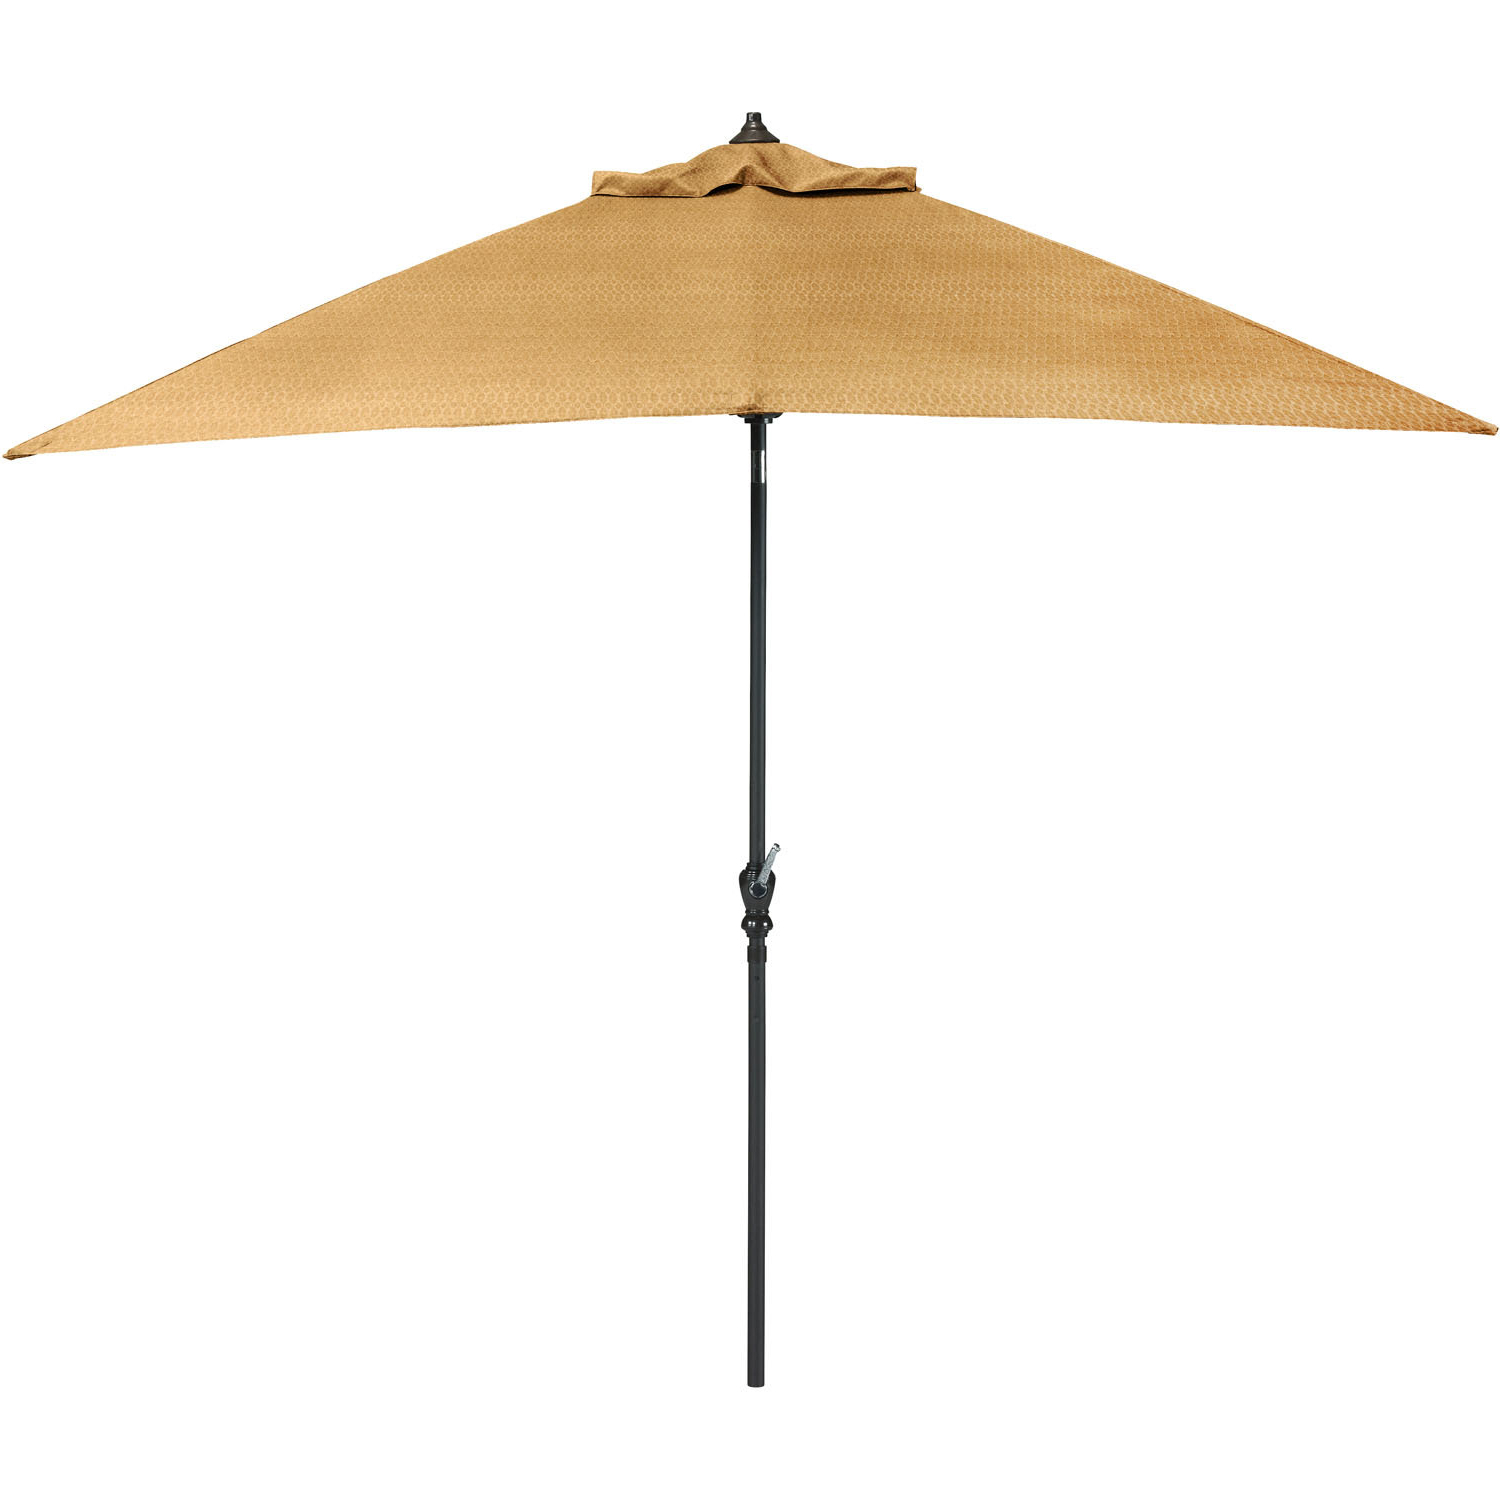 Newest Caravelle Market Sunbrella Umbrellas Inside Sweeten 9' Market Umbrella (View 15 of 20)